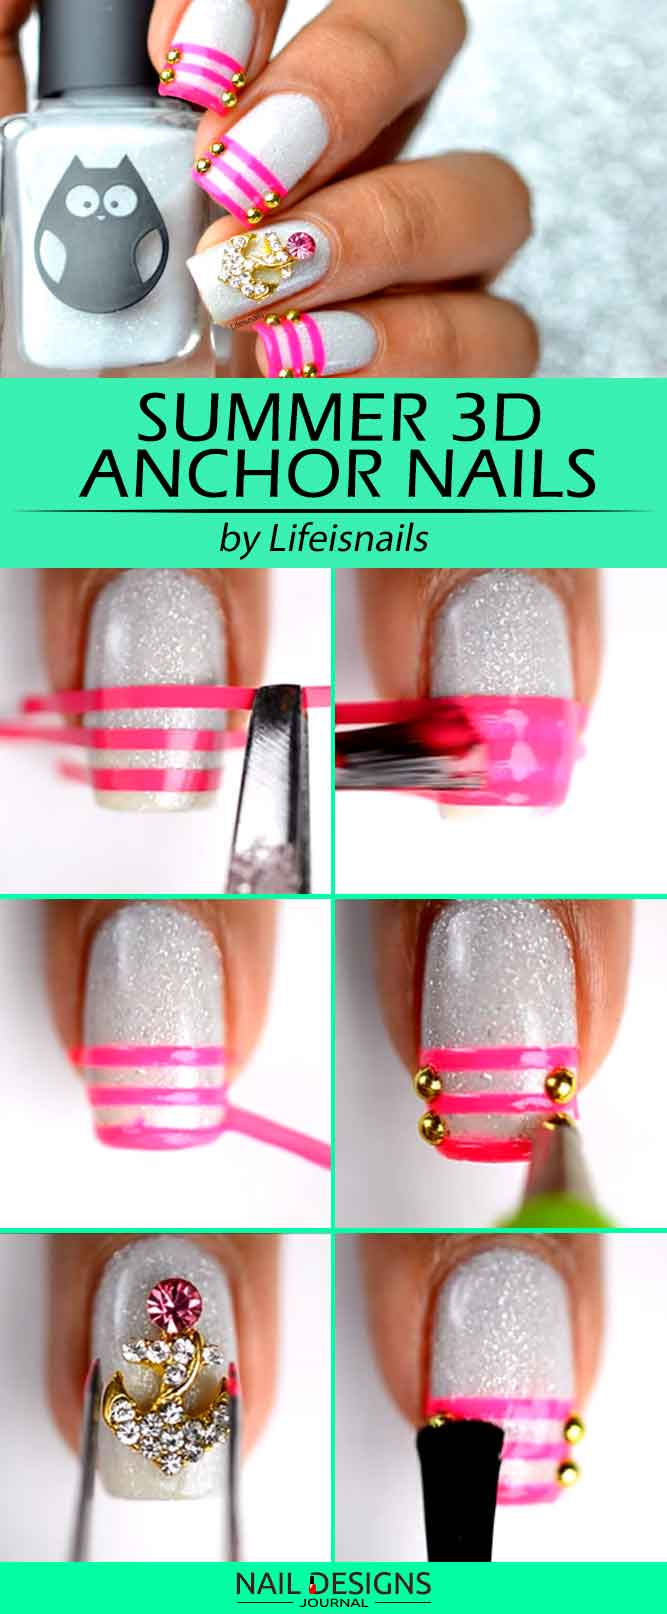 3D Anchor Nails Design